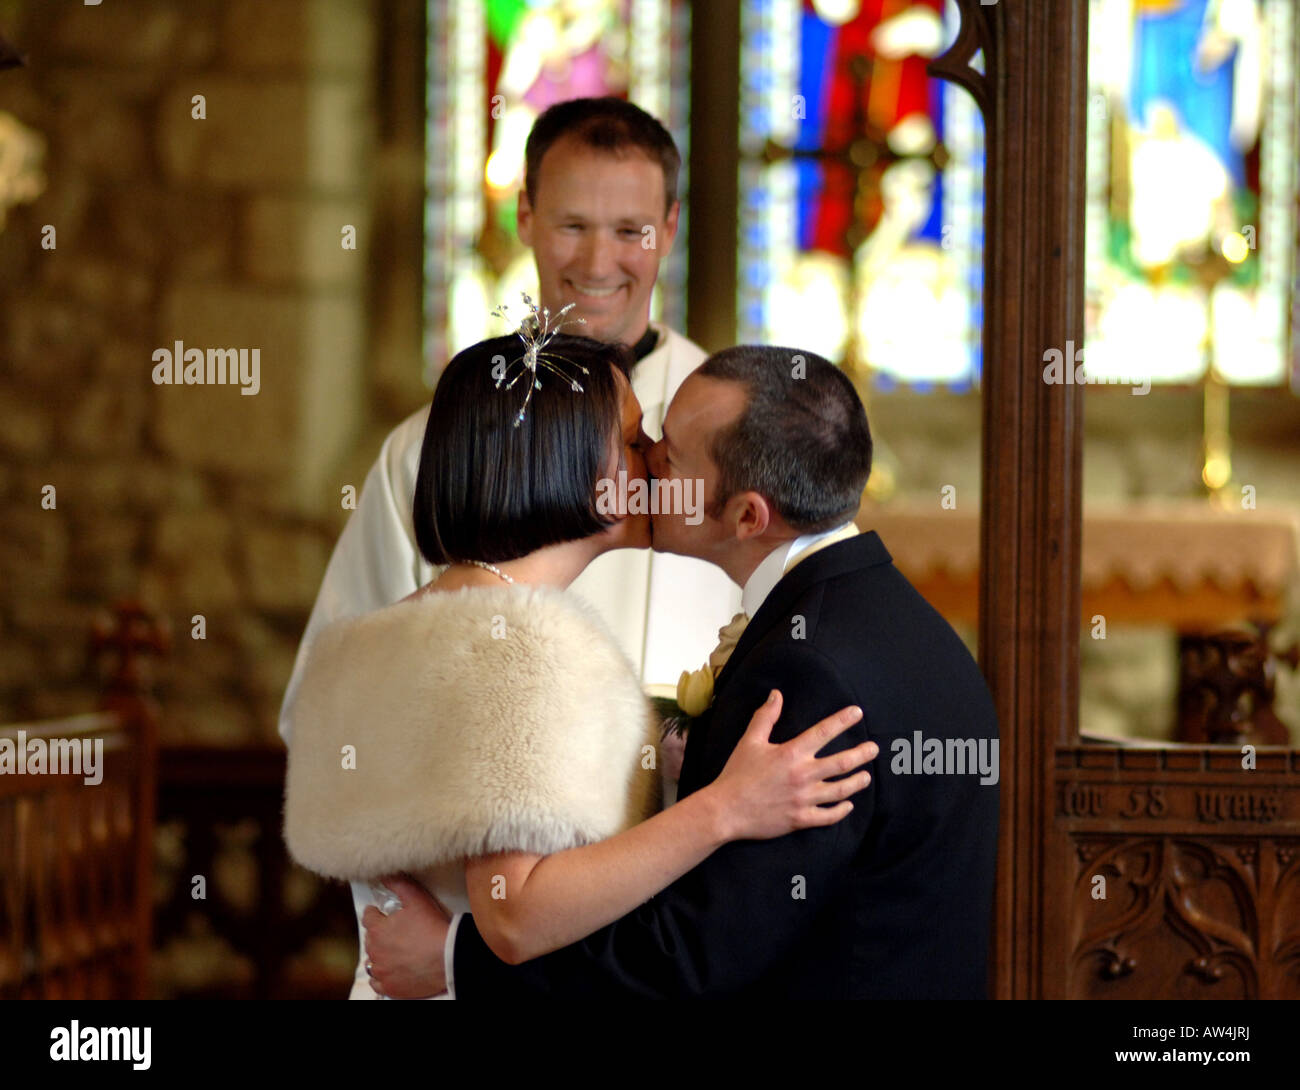 A couple kiss at the church aisle after getting married Model Released - Stock Image